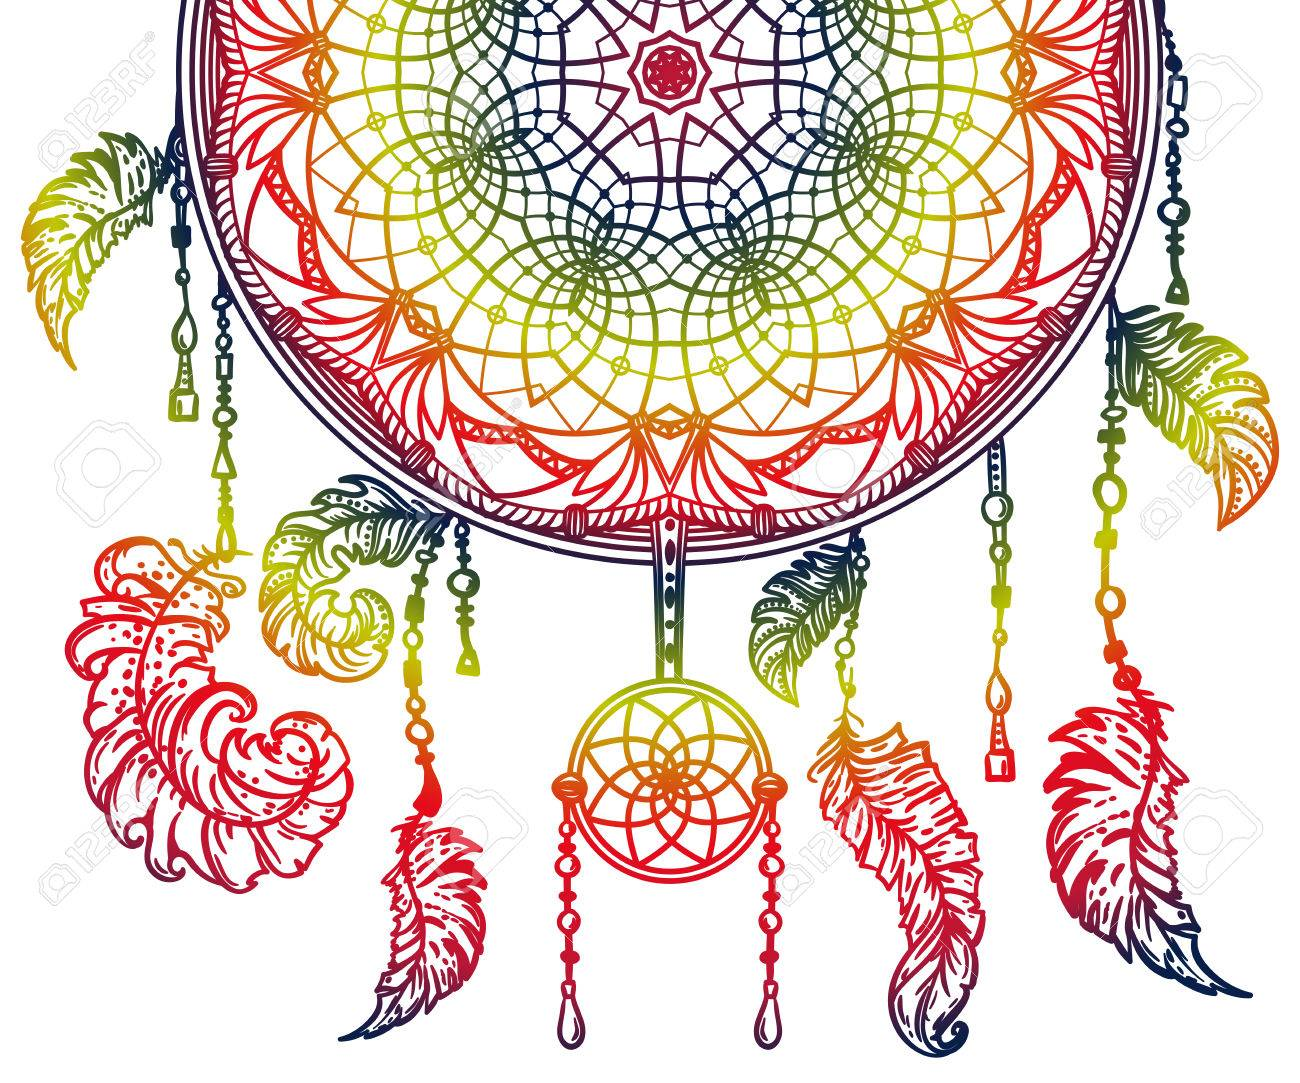 picture regarding Legend of the Dreamcatcher Printable referred to as Vibrant desire catcher with ornament and feathers. Style thought..